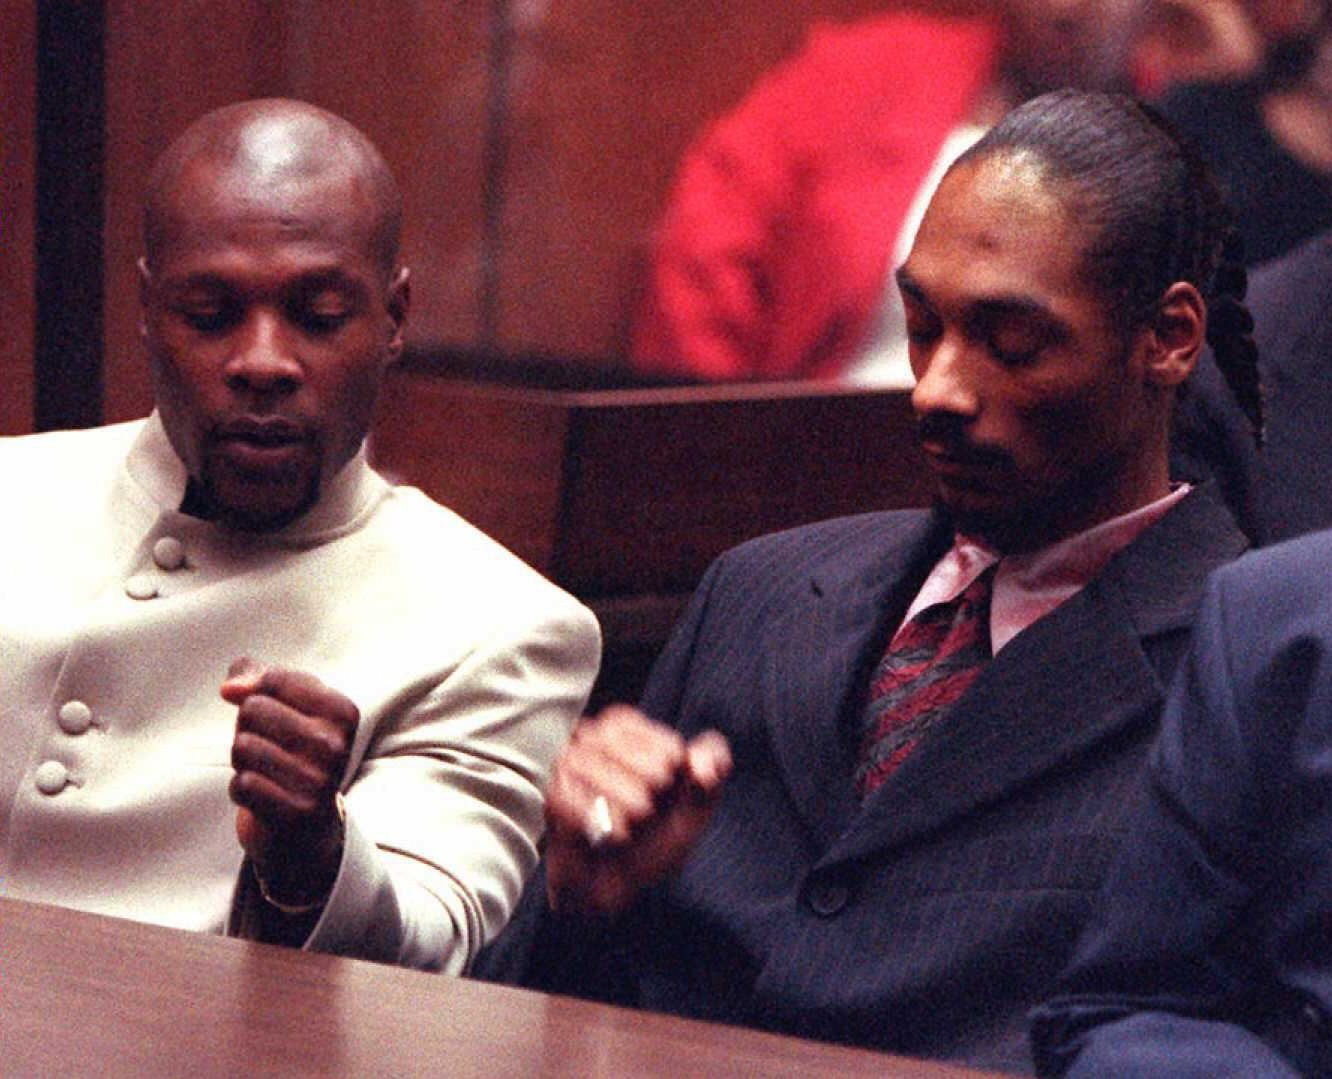 snoops-trial-1 The Two Murderous Celebrities We've All Forgotten About